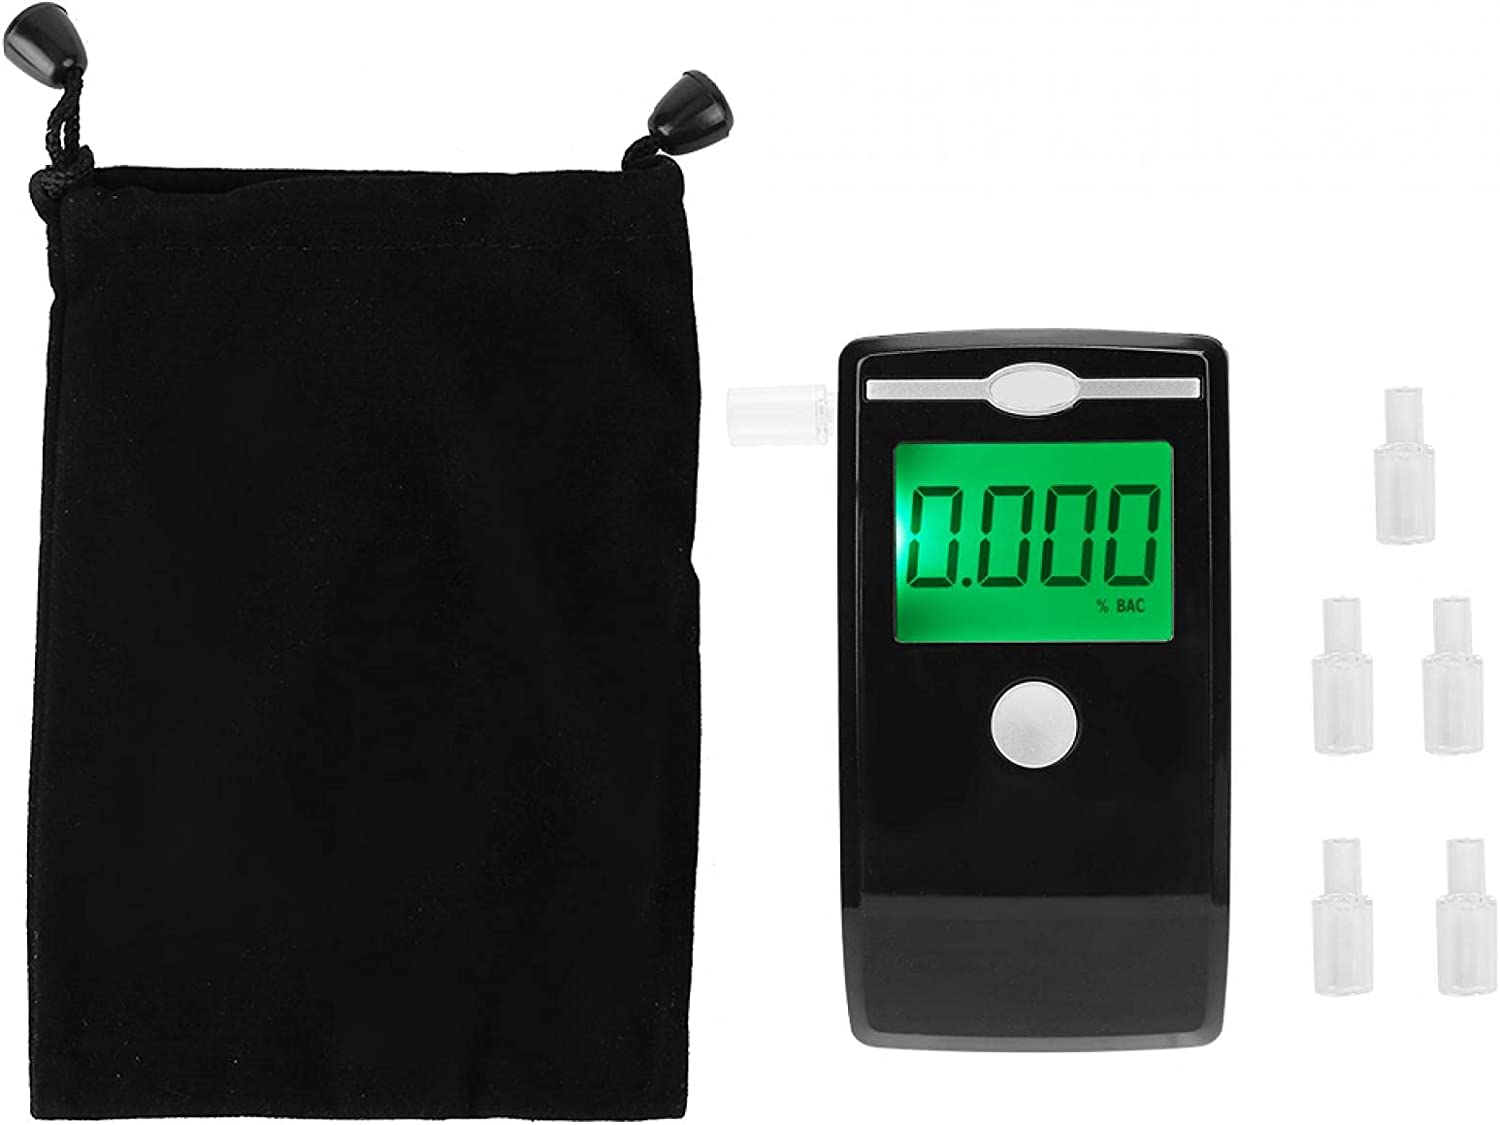 Digital Alcohol Breath Easy-to-use Popular brand in the world Tester Analyzer Te